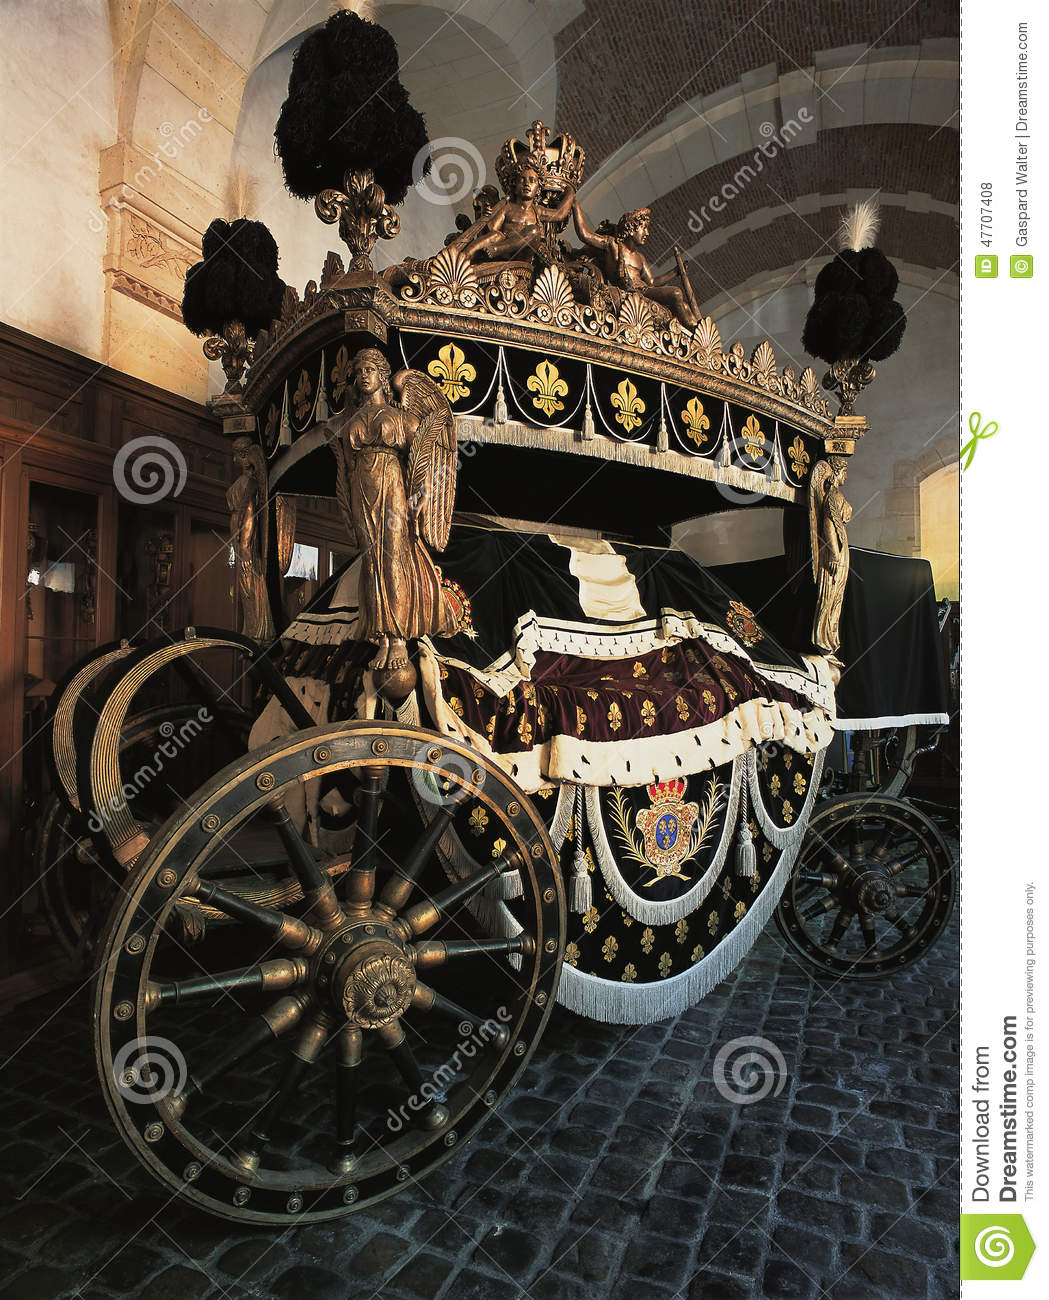 Louis XV funeral carriage at Versailles Palace